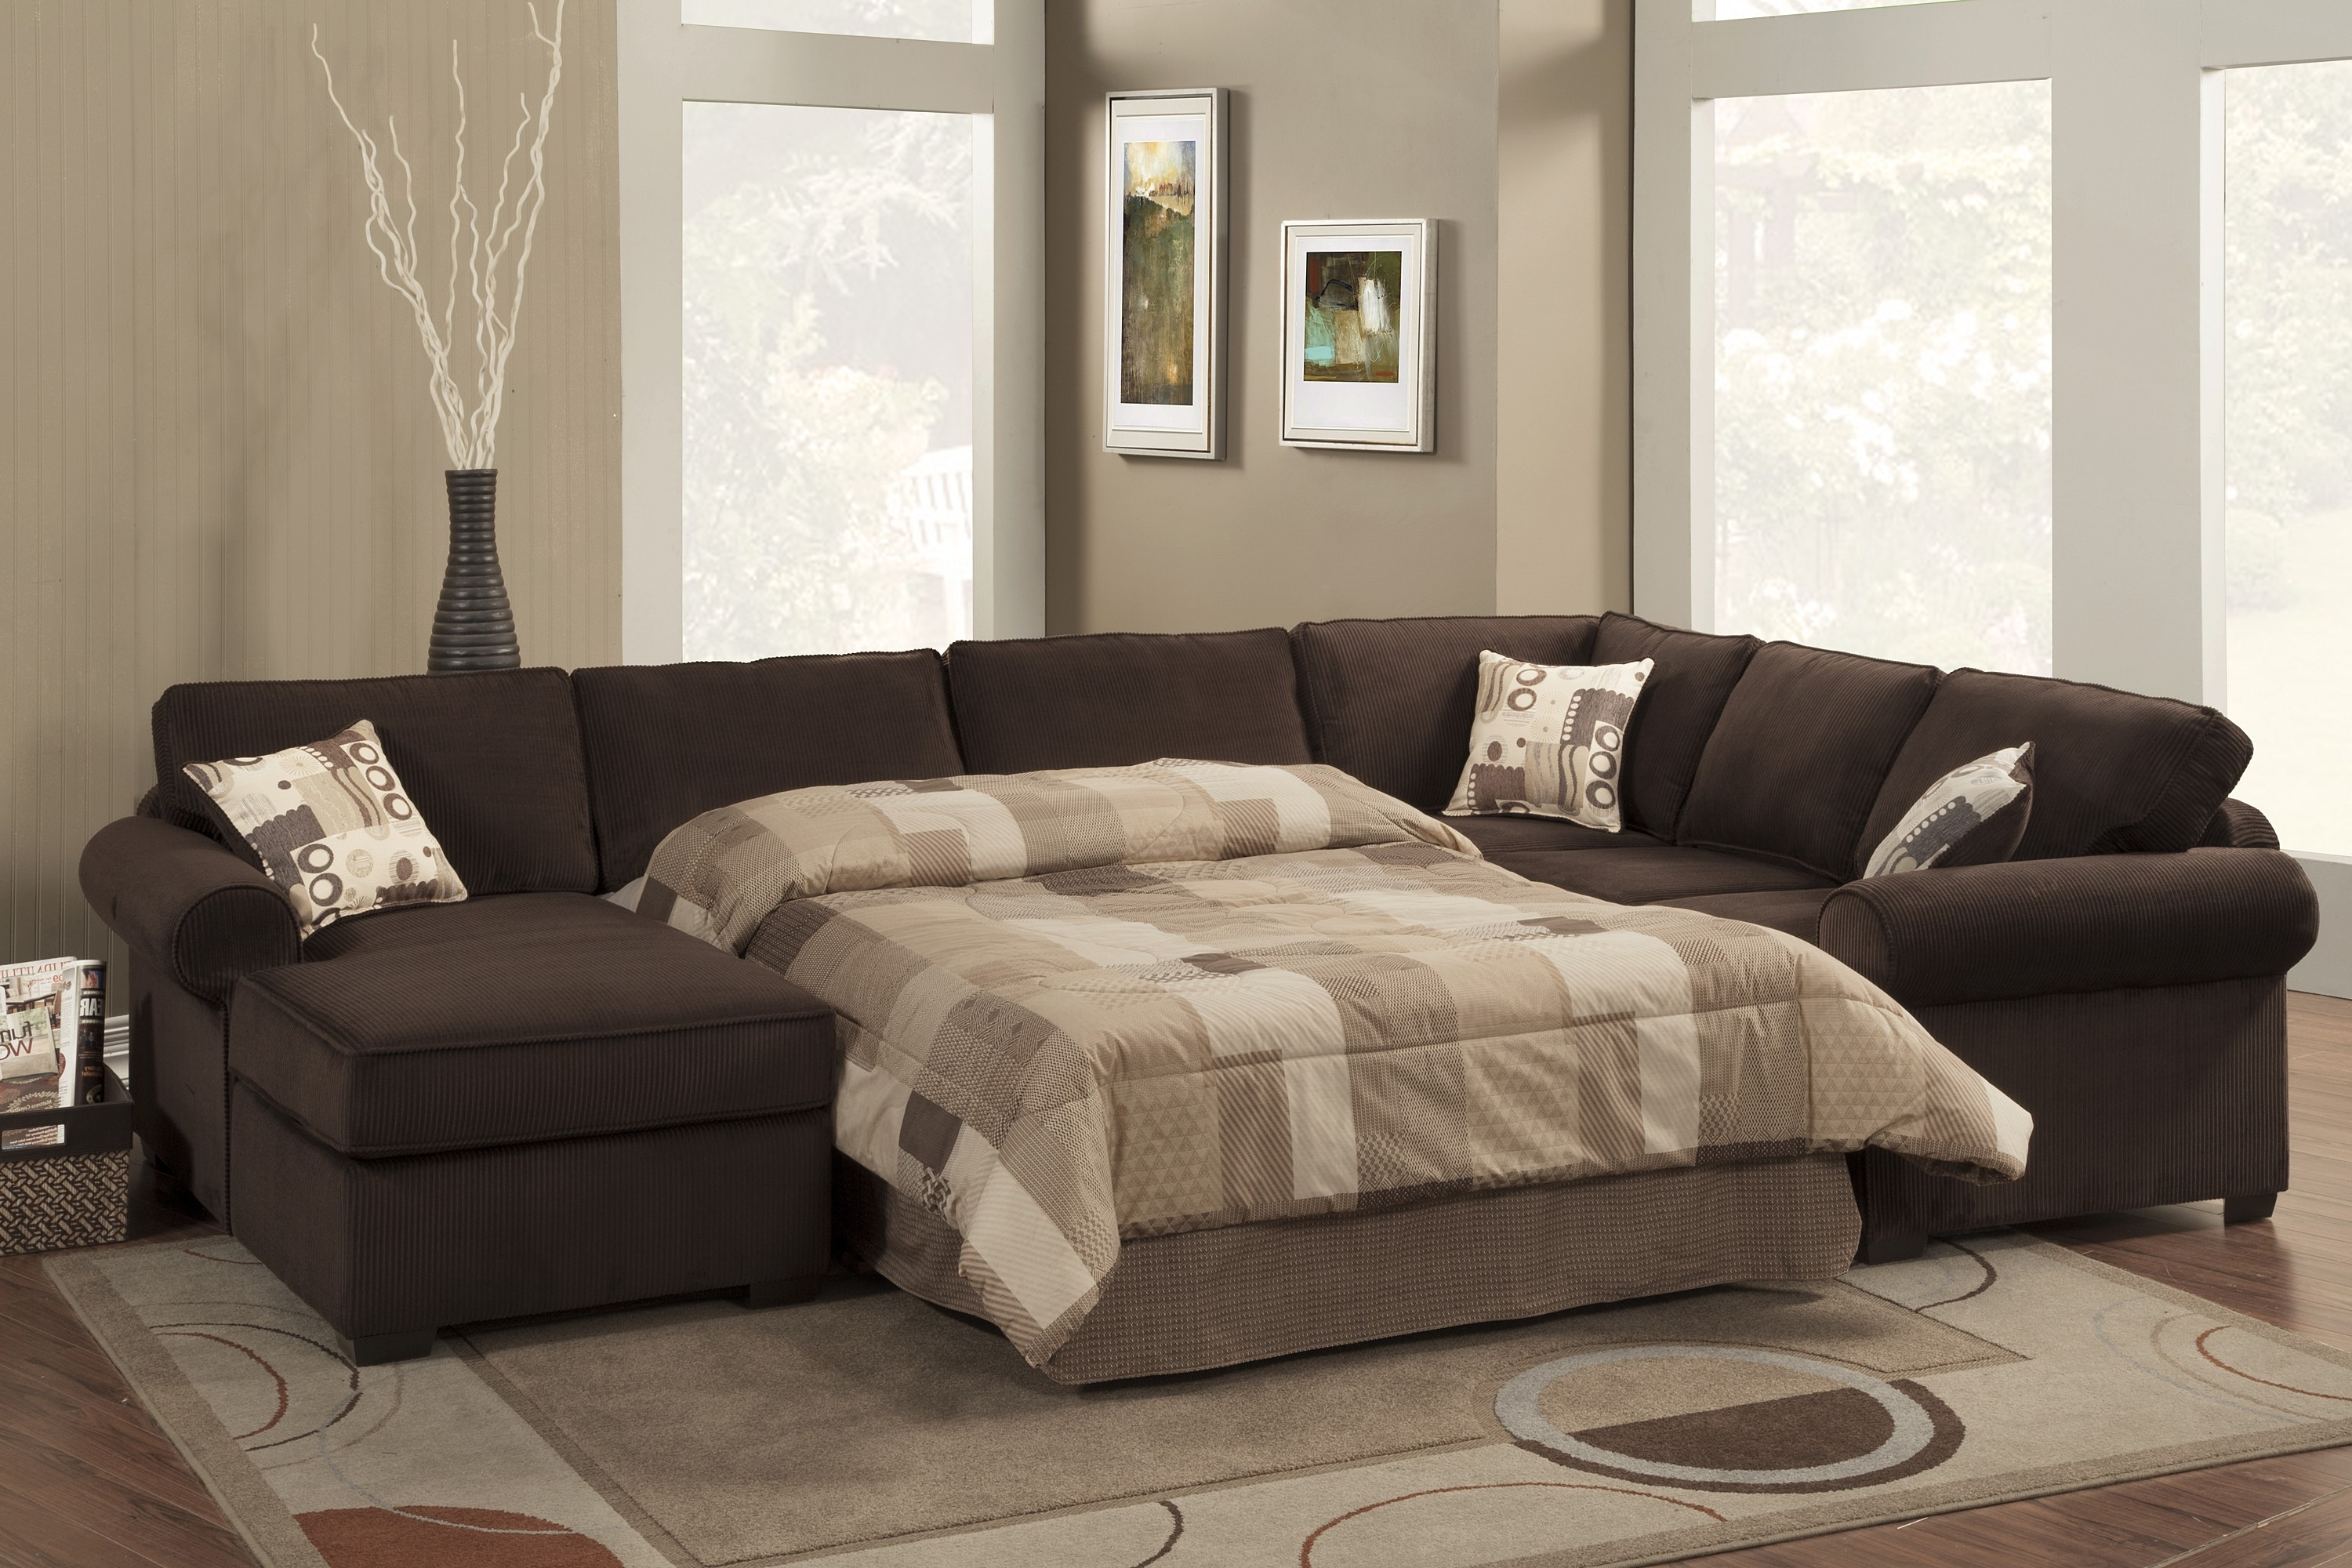 Popular Brown Sectionals With Chaise With Espresso Leather Sectional Sofa With Chaise Lounge And Tufted (View 10 of 15)